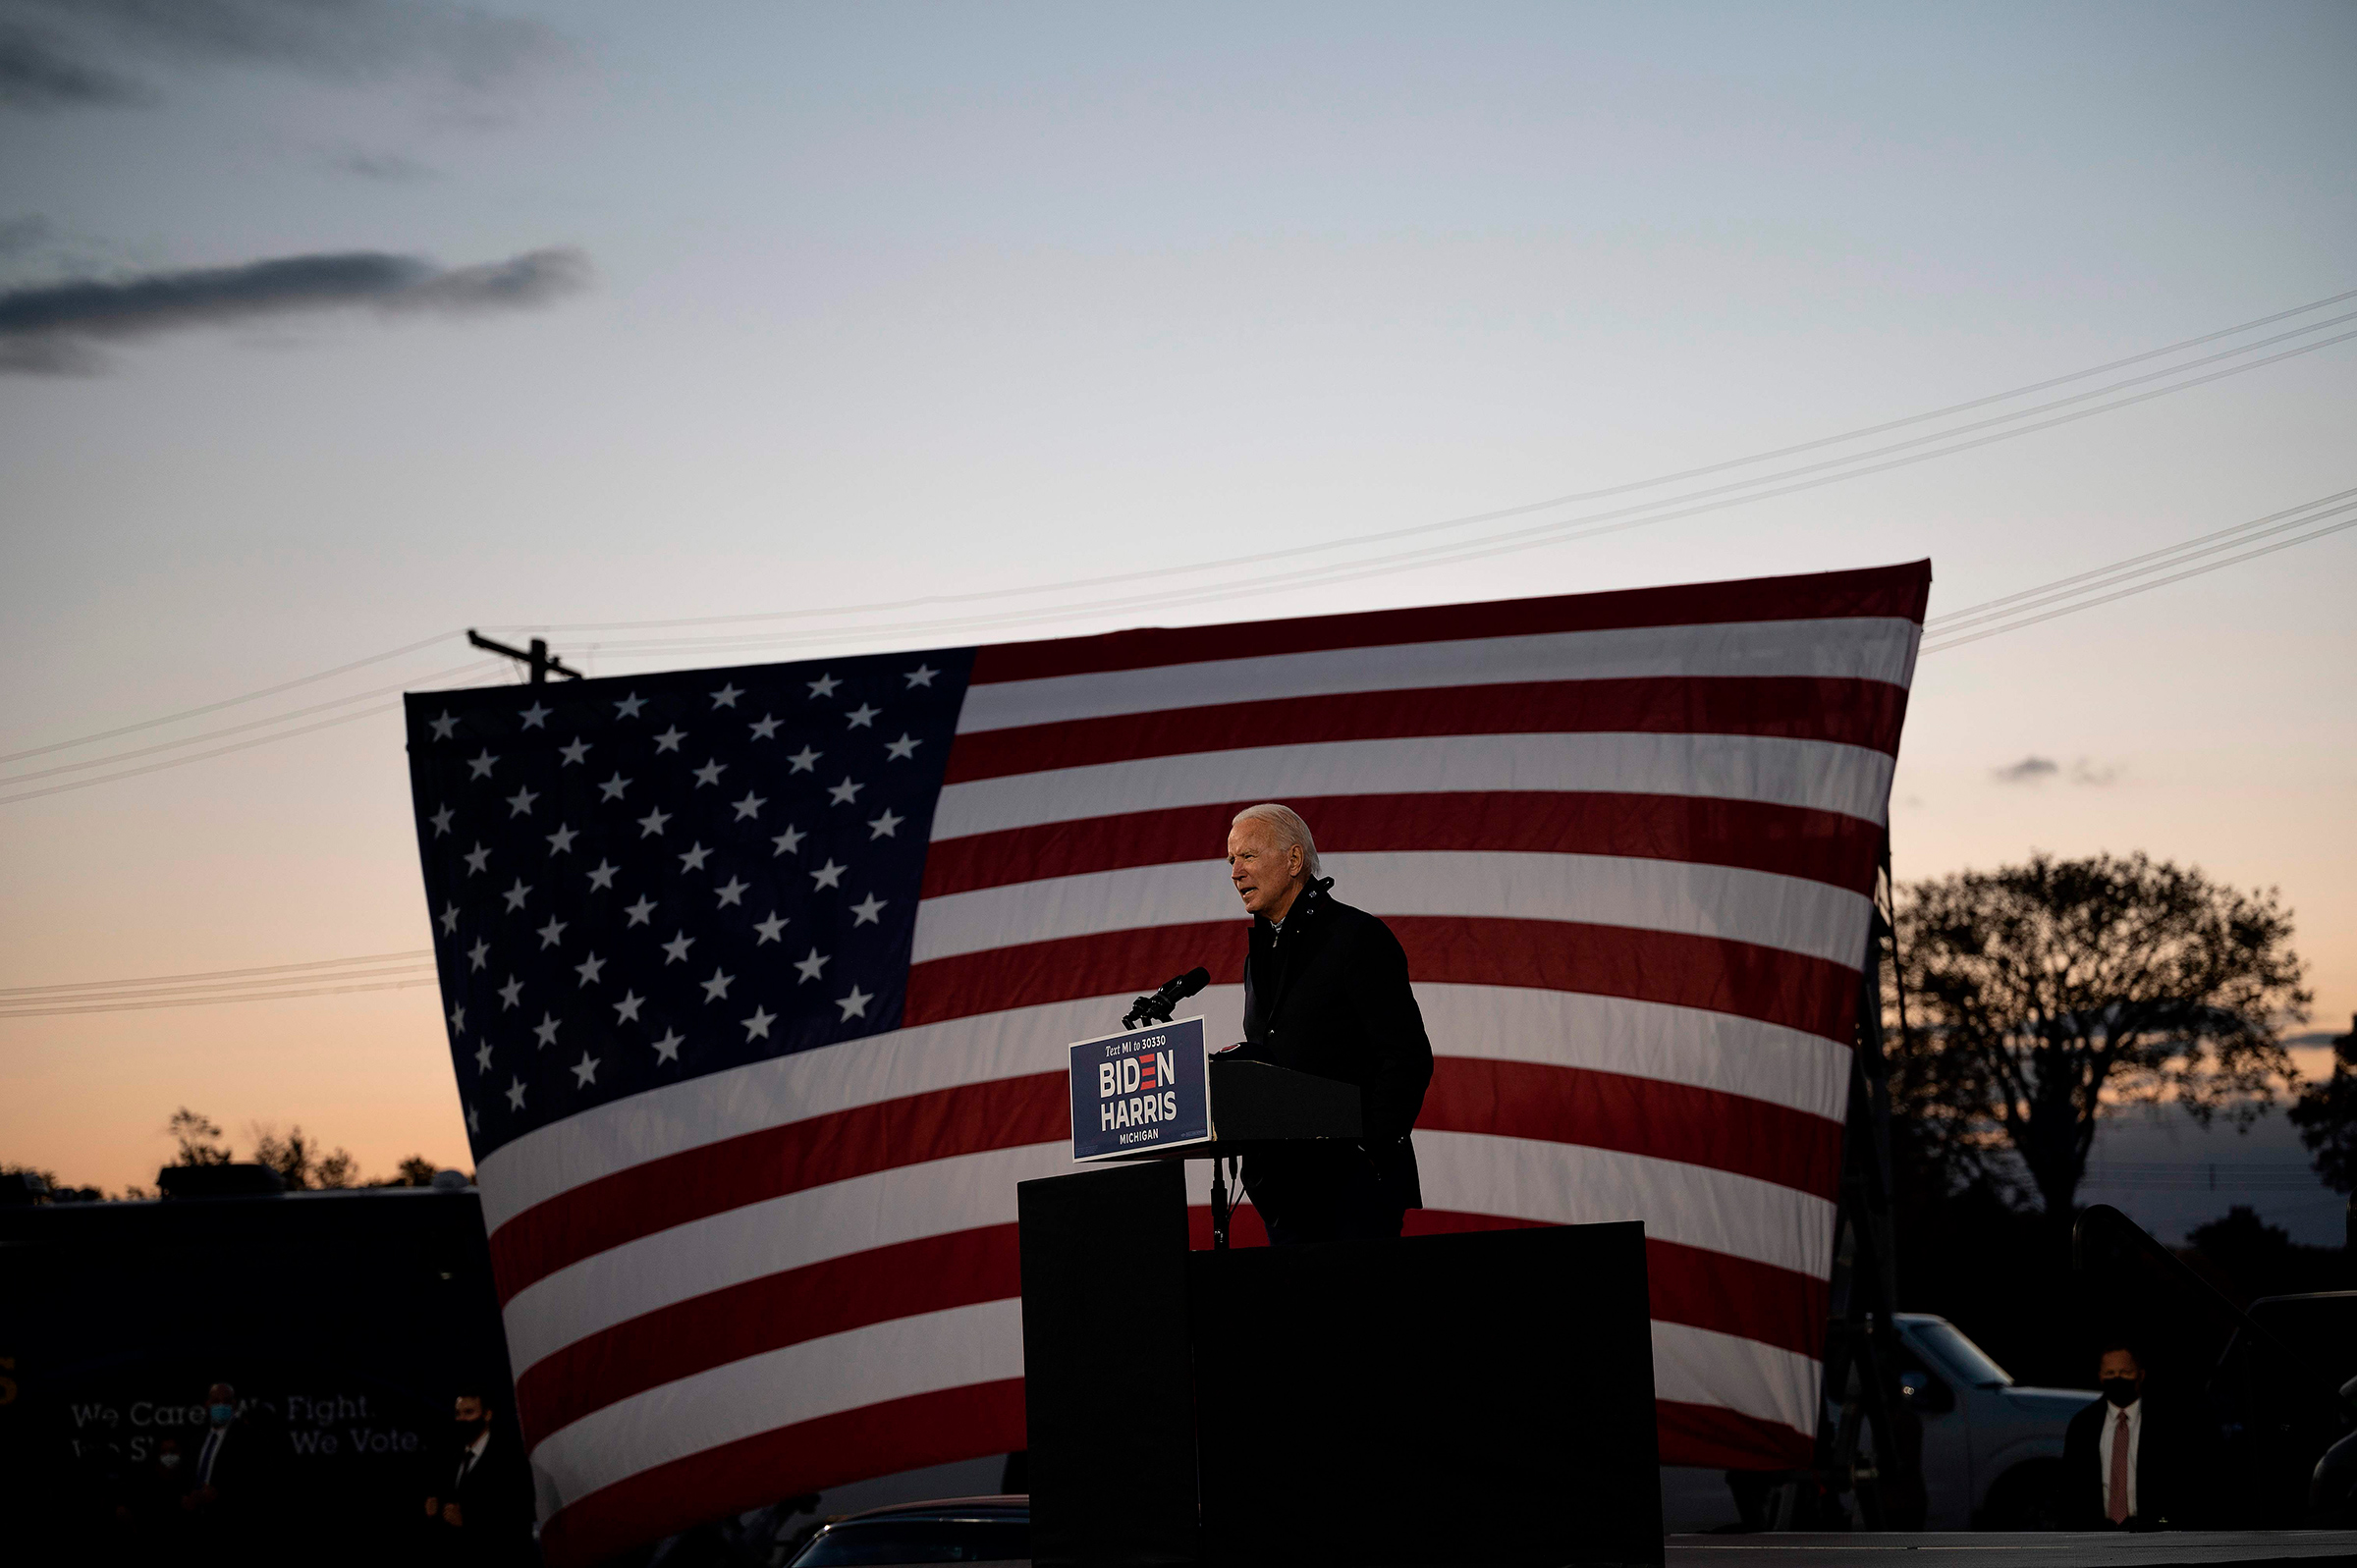 Biden campaigns at a drive-in rally in Detroit on Oct. 16